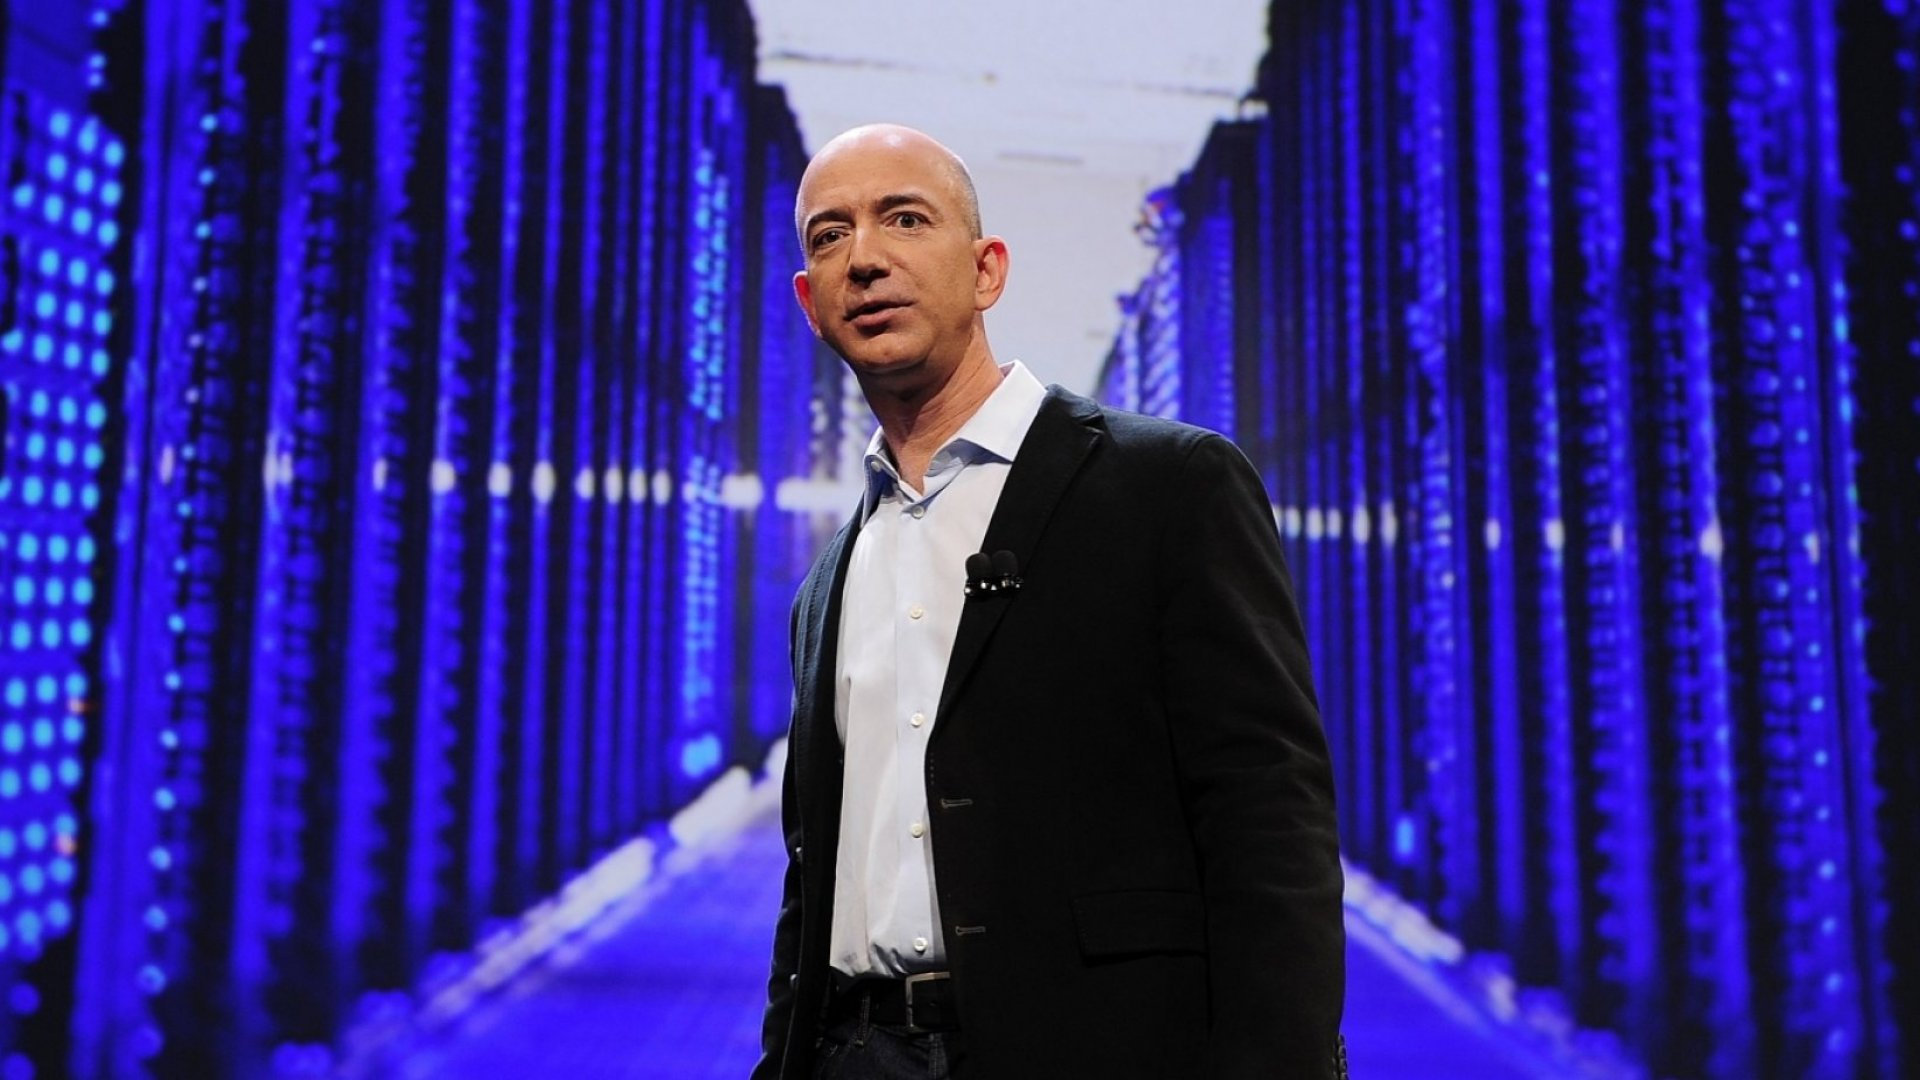 $6 Billion in 5 Days: The Heartwarming Story of Jeff Bezos and His Net Worth